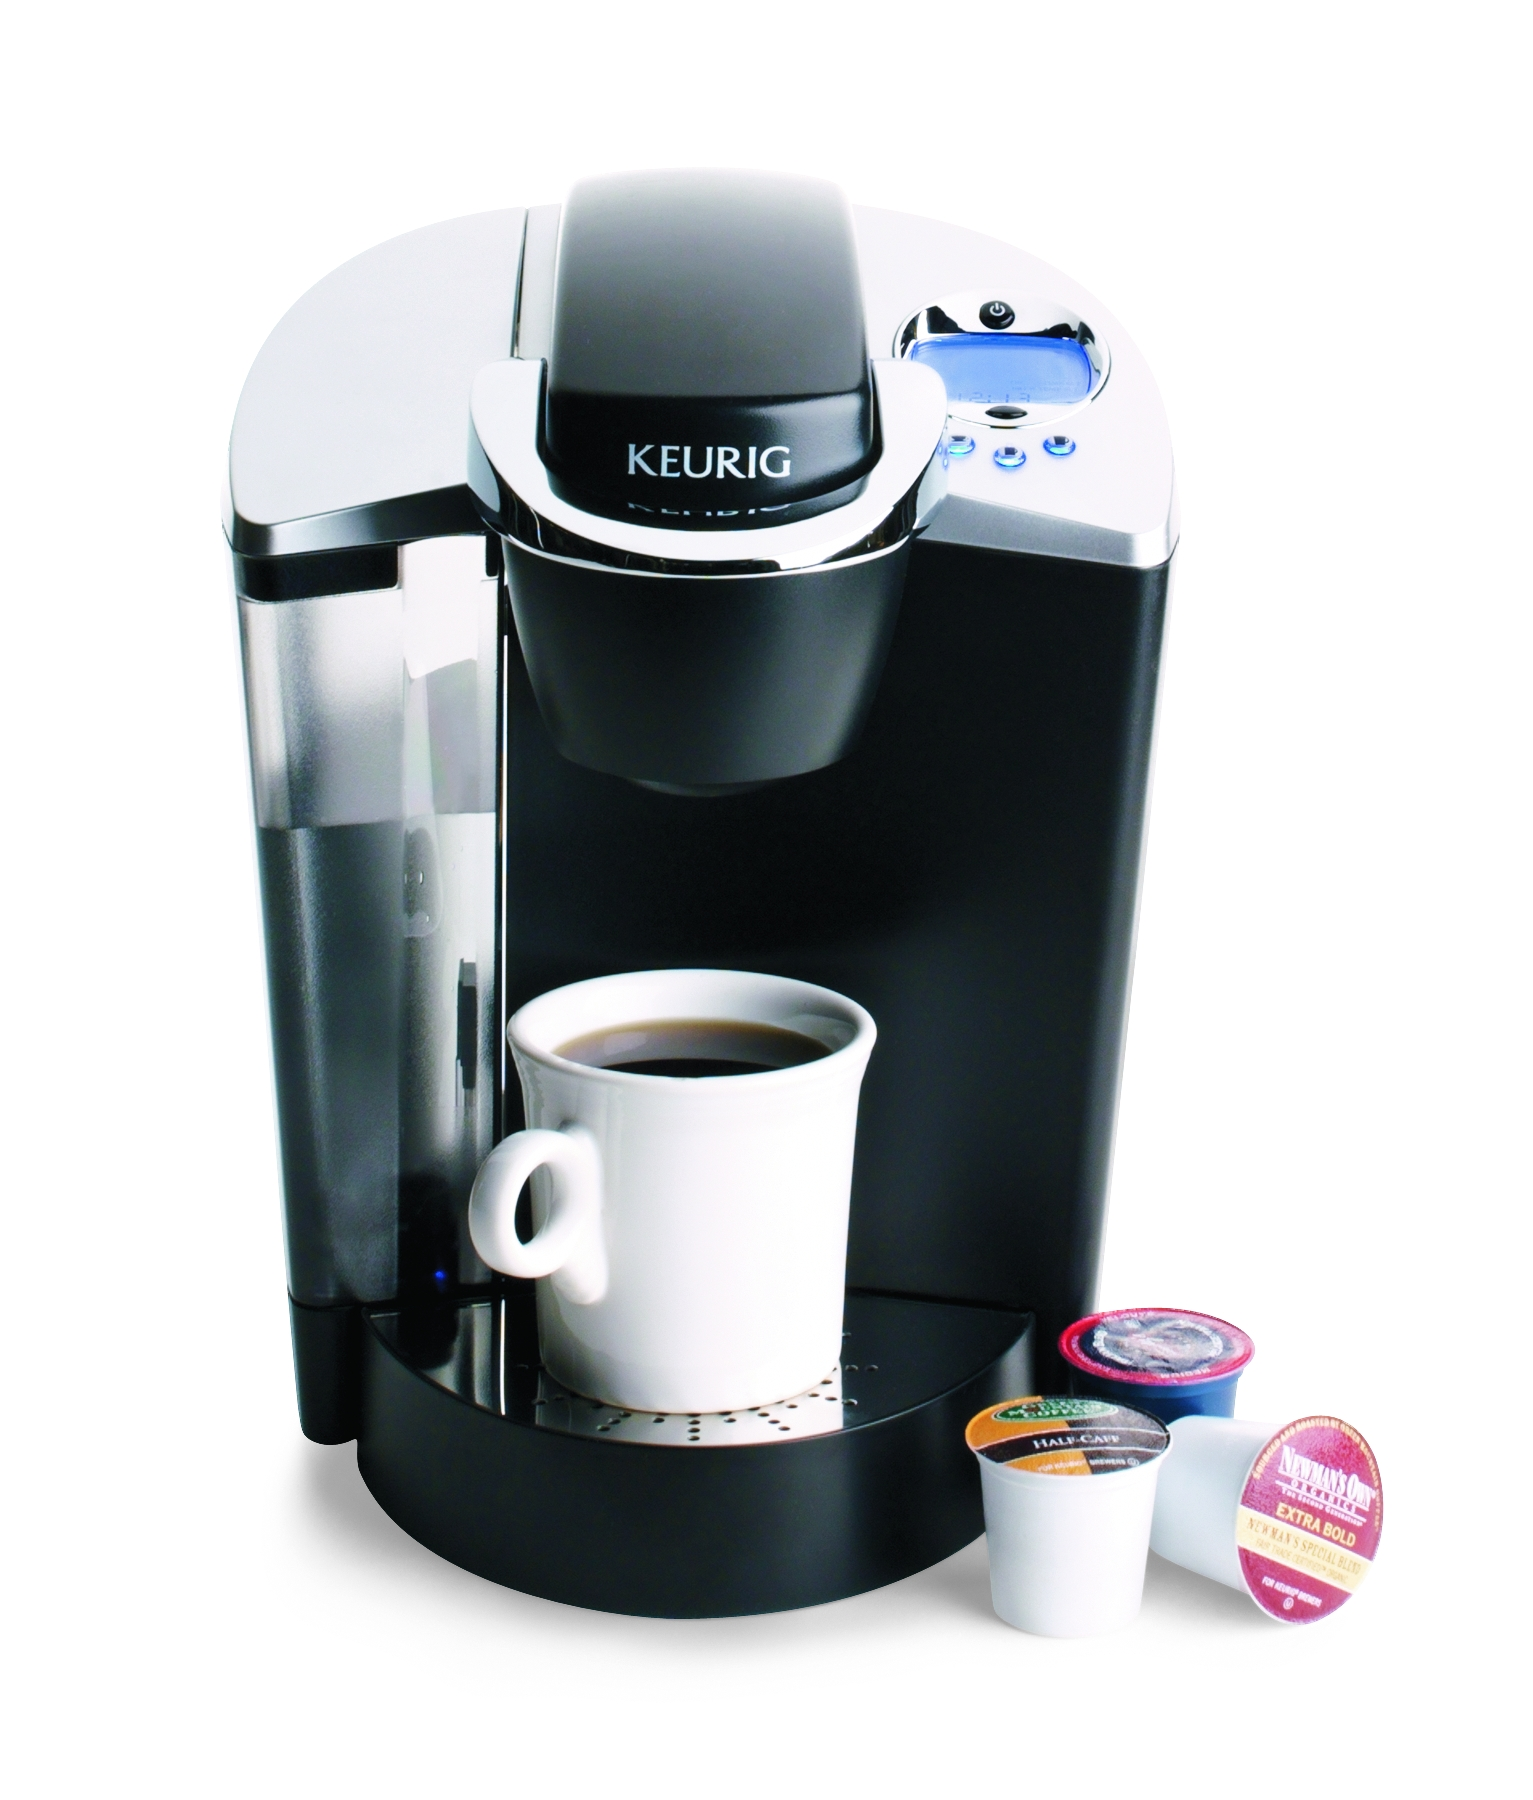 Keurig B60/K65 Special Edition Coffee Maker